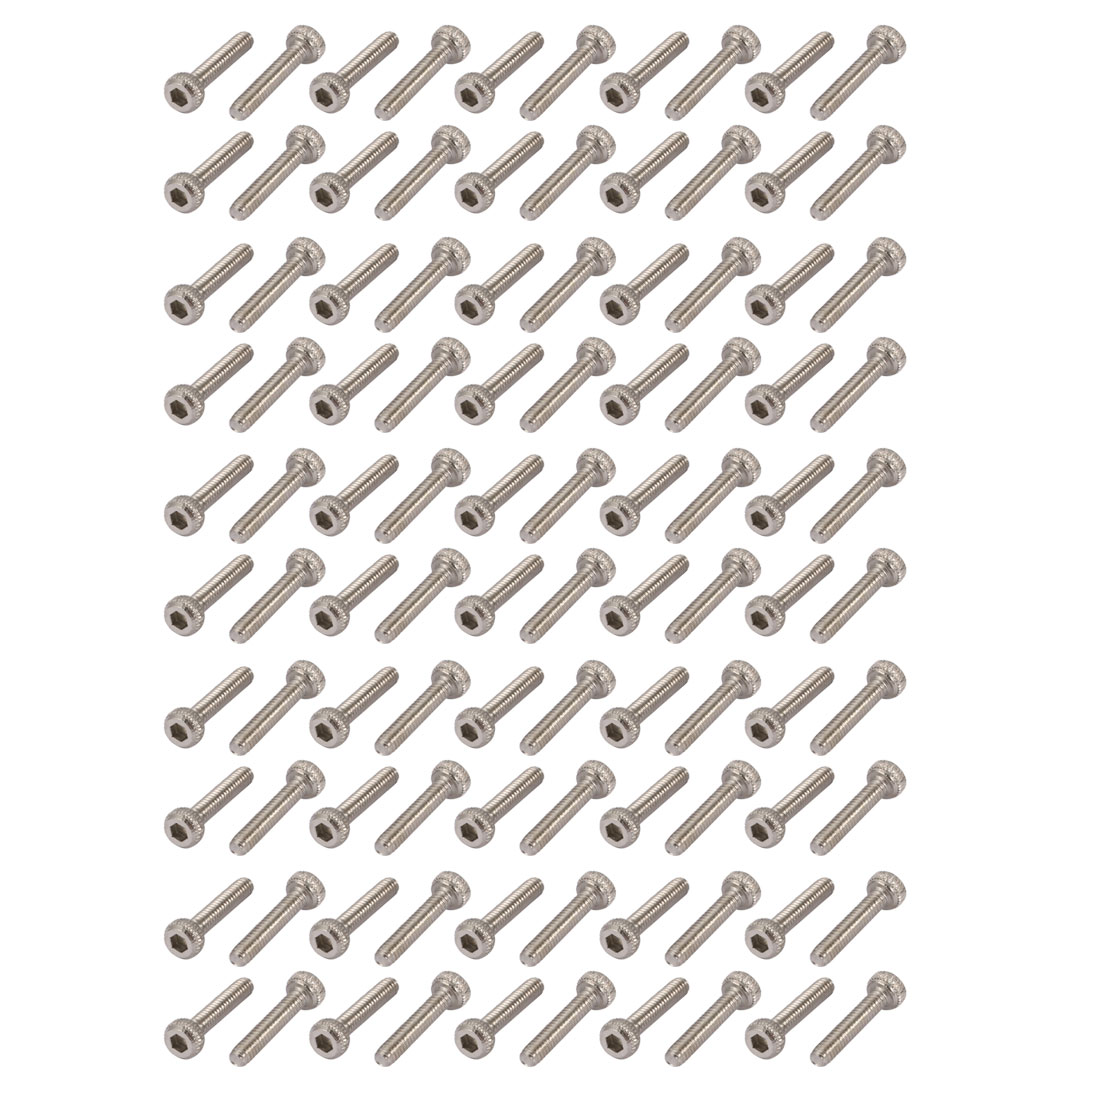 100pcs M2x10mm 304 Stainless Steel Knurled Hex Socket Head Bolts w Nut Washer